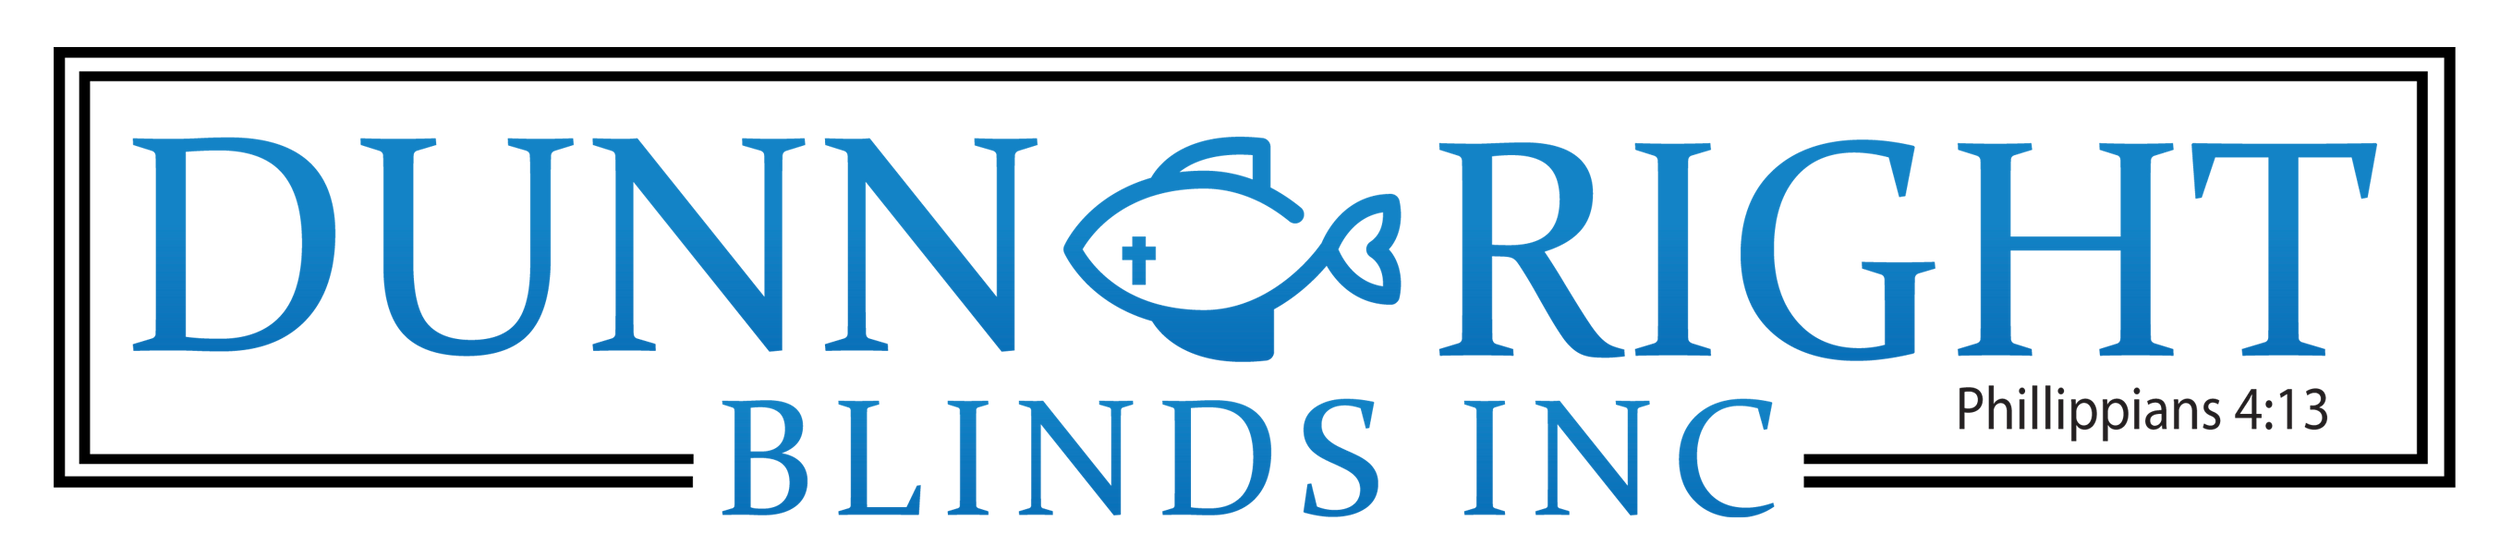 Contact Email California Dunn Right Blinds Inc